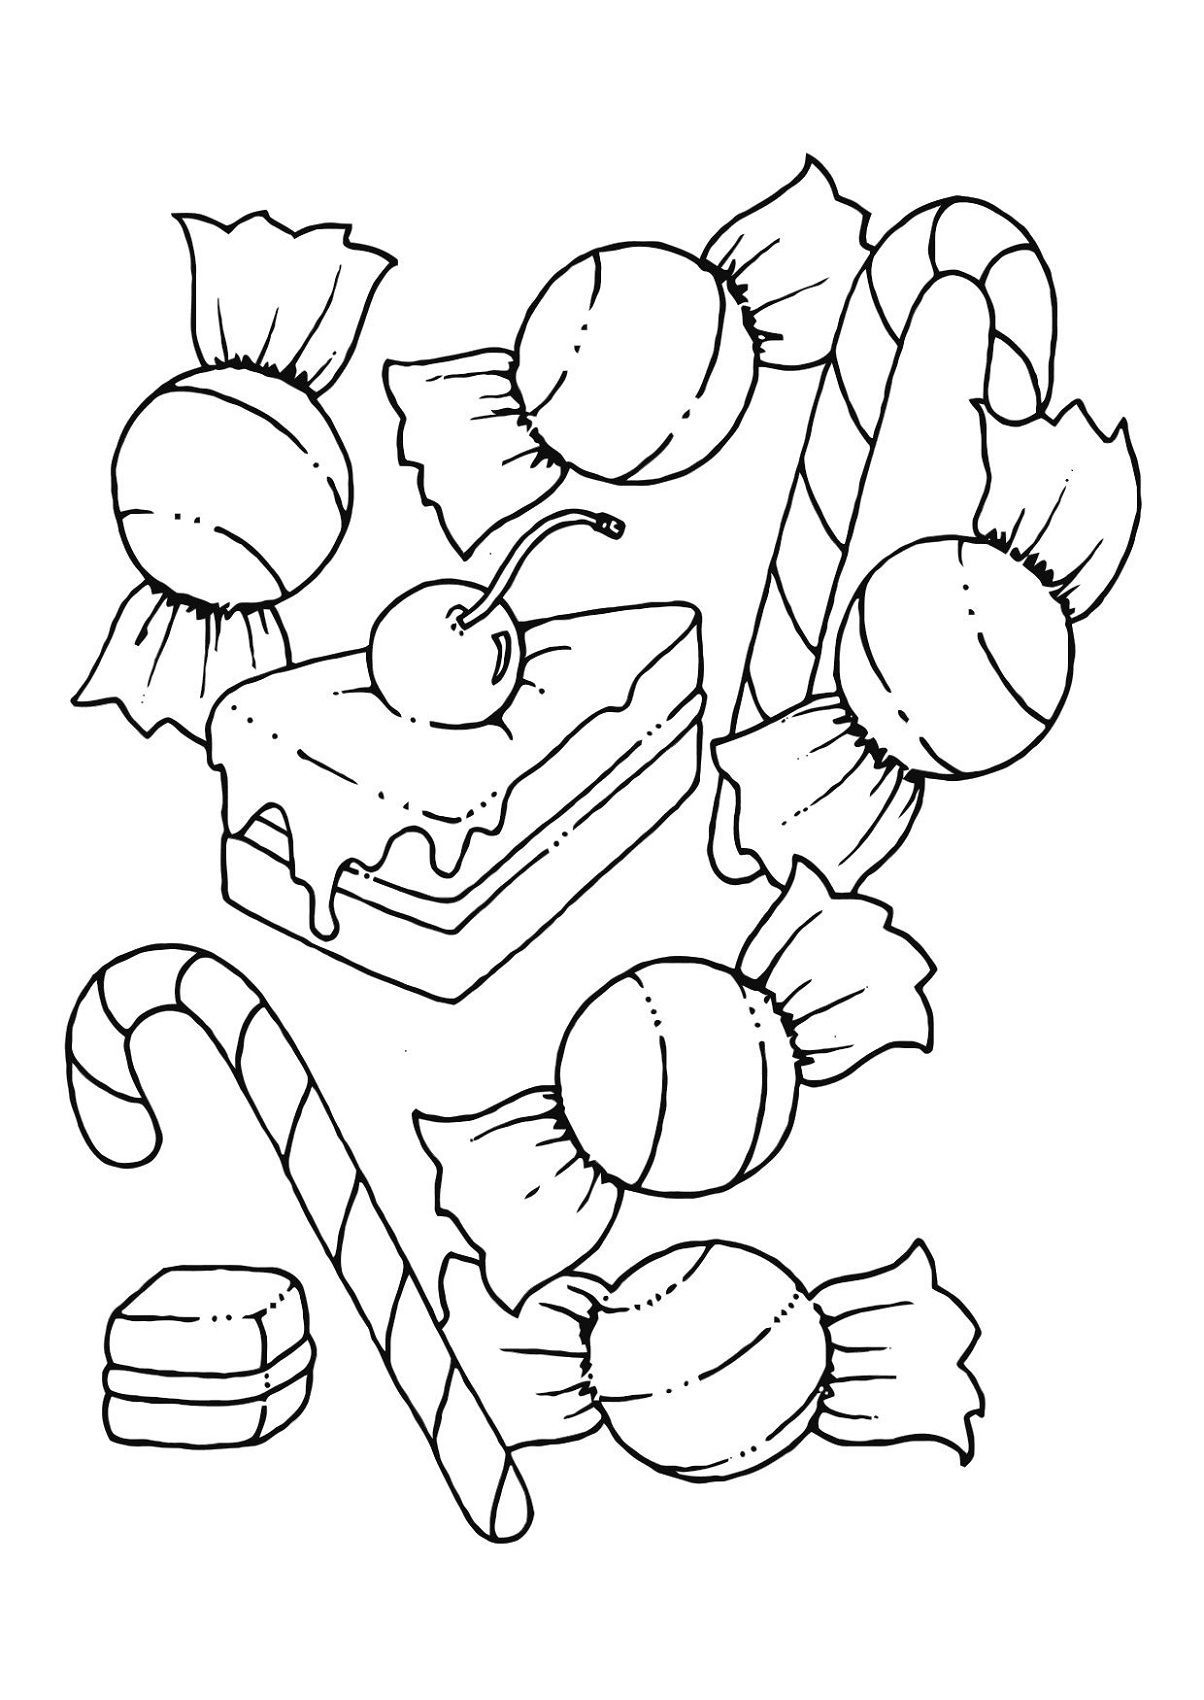 Candyland Coloring Pages For Kids Candy Coloring Pages Food Coloring Pages Candy Drawing